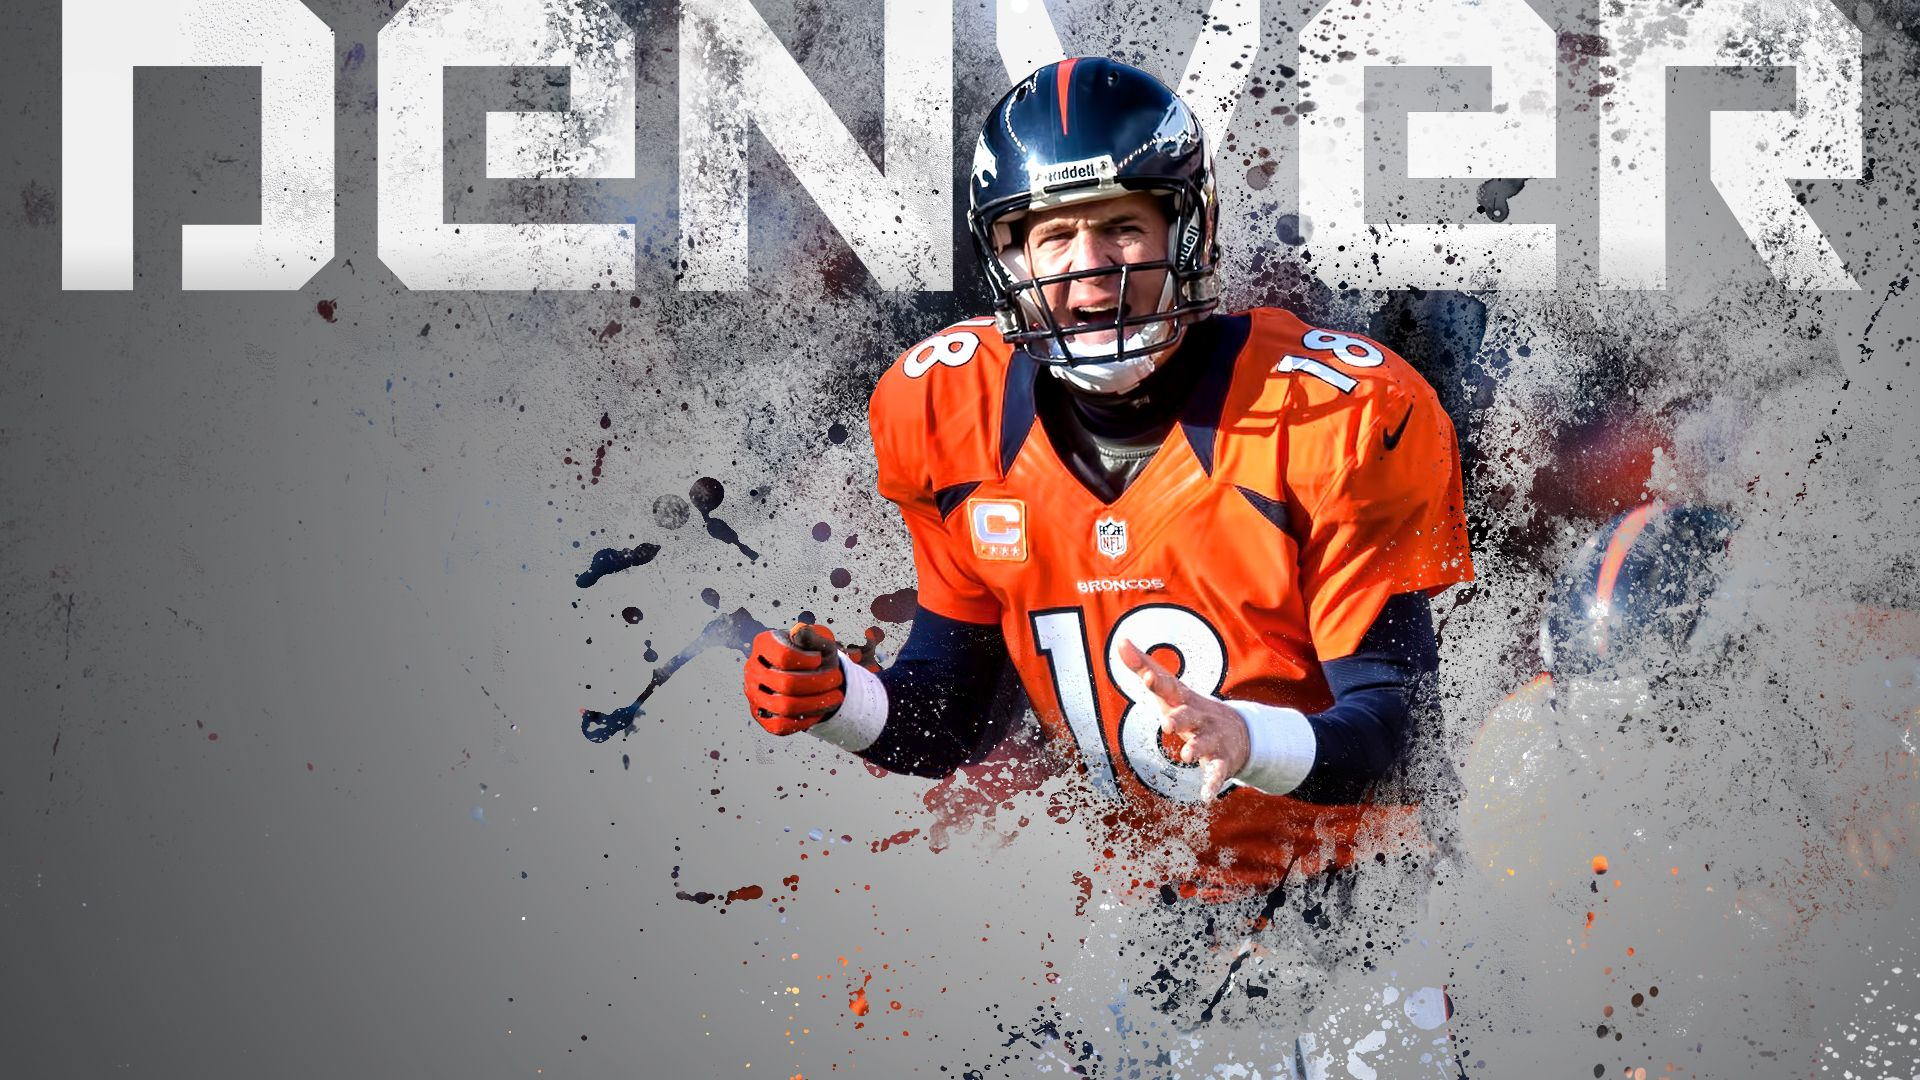 Bronco pictures of payton manning denver broncos peyton manning bronco pictures of payton manning denver broncos peyton manning wallpaper 2013 hd free hd voltagebd Image collections